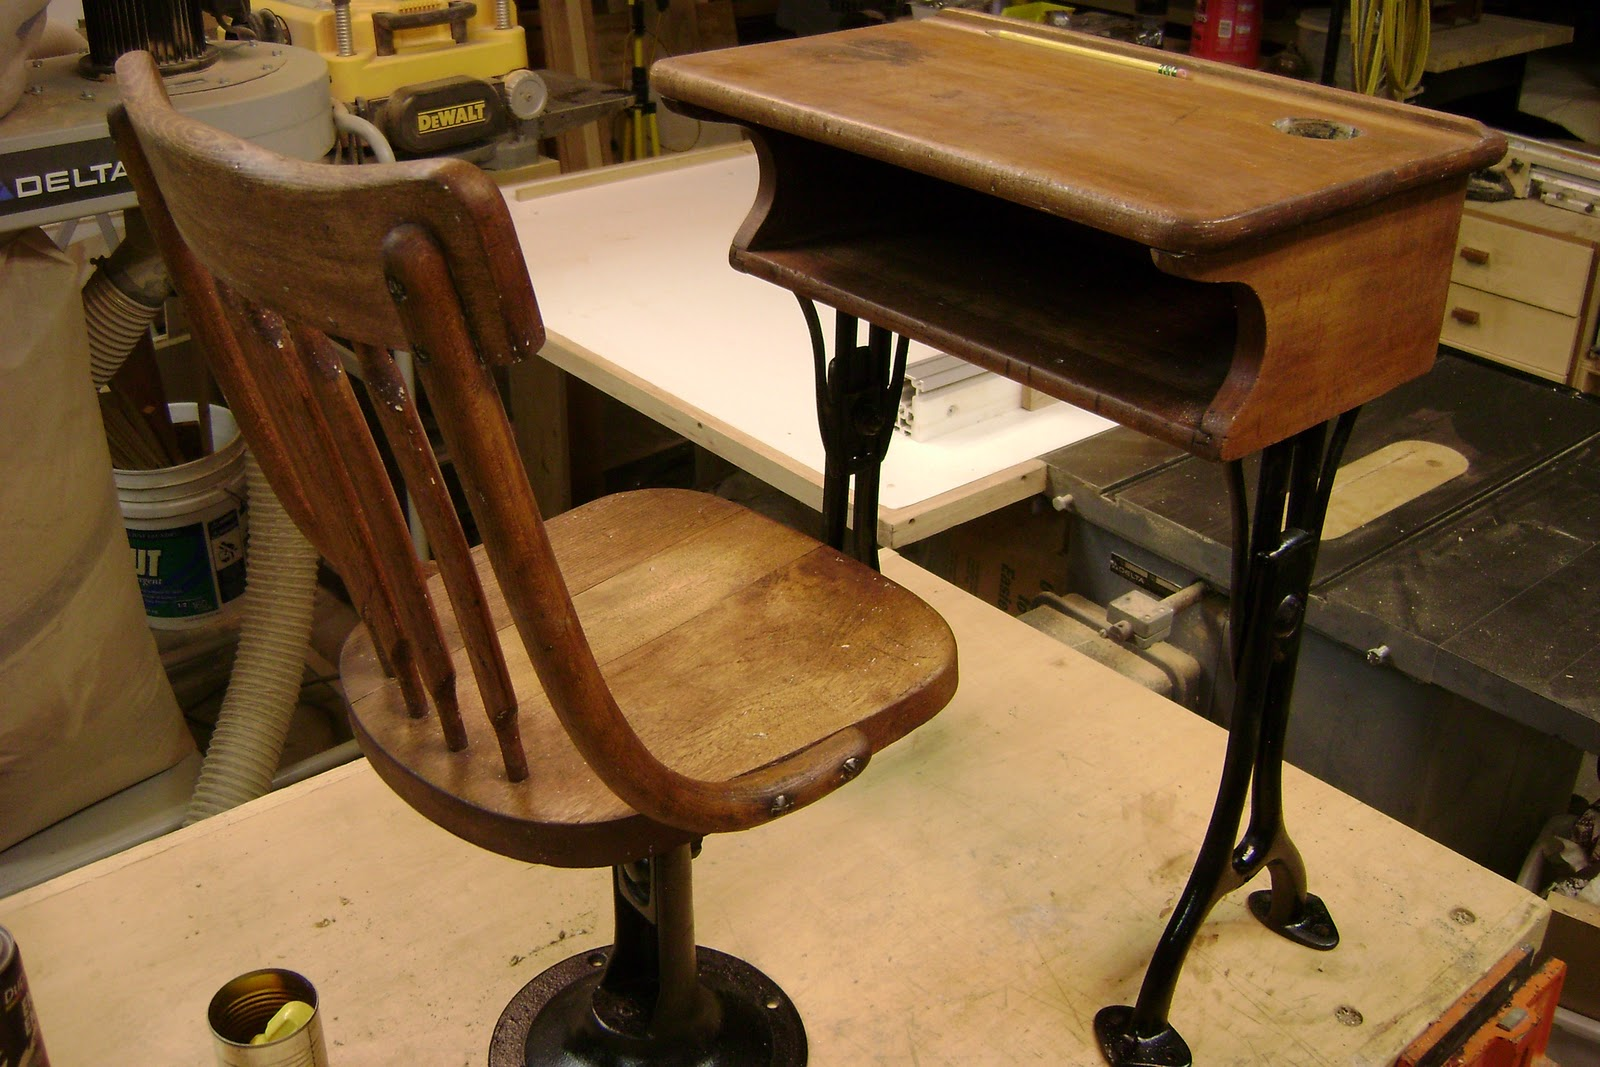 Alaska Wood Old School Desk restored : DSC01677 <strong>High Stool</strong> Desk Chairs from alaskawood.blogspot.com size 1600 x 1067 jpeg 273kB